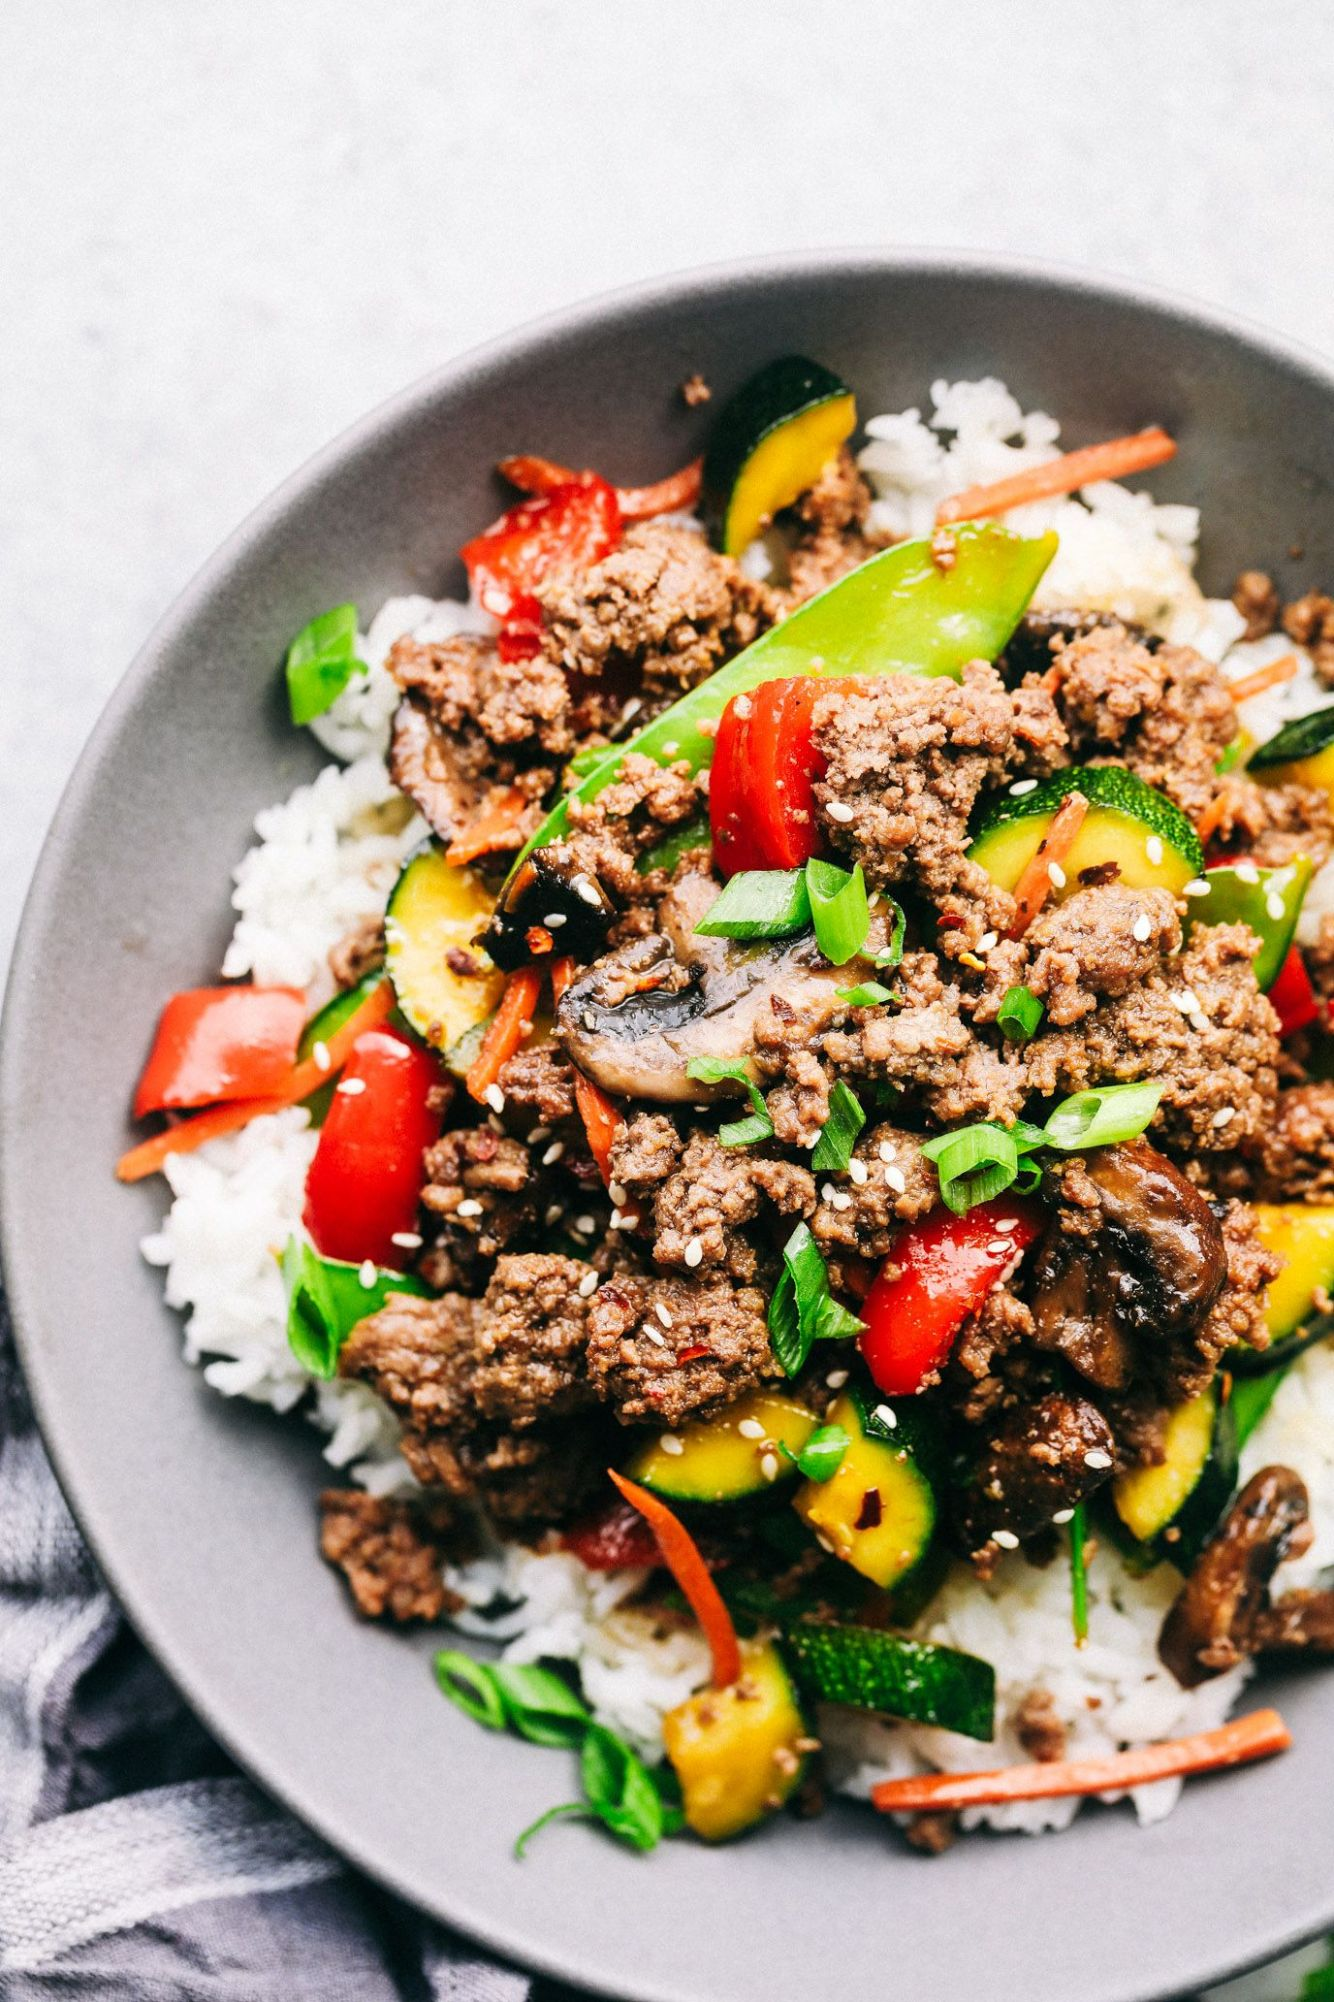 12 Easy Ground Beef Recipes - Best Dinner Ideas With Ground Beef - Recipes Beef Dinner